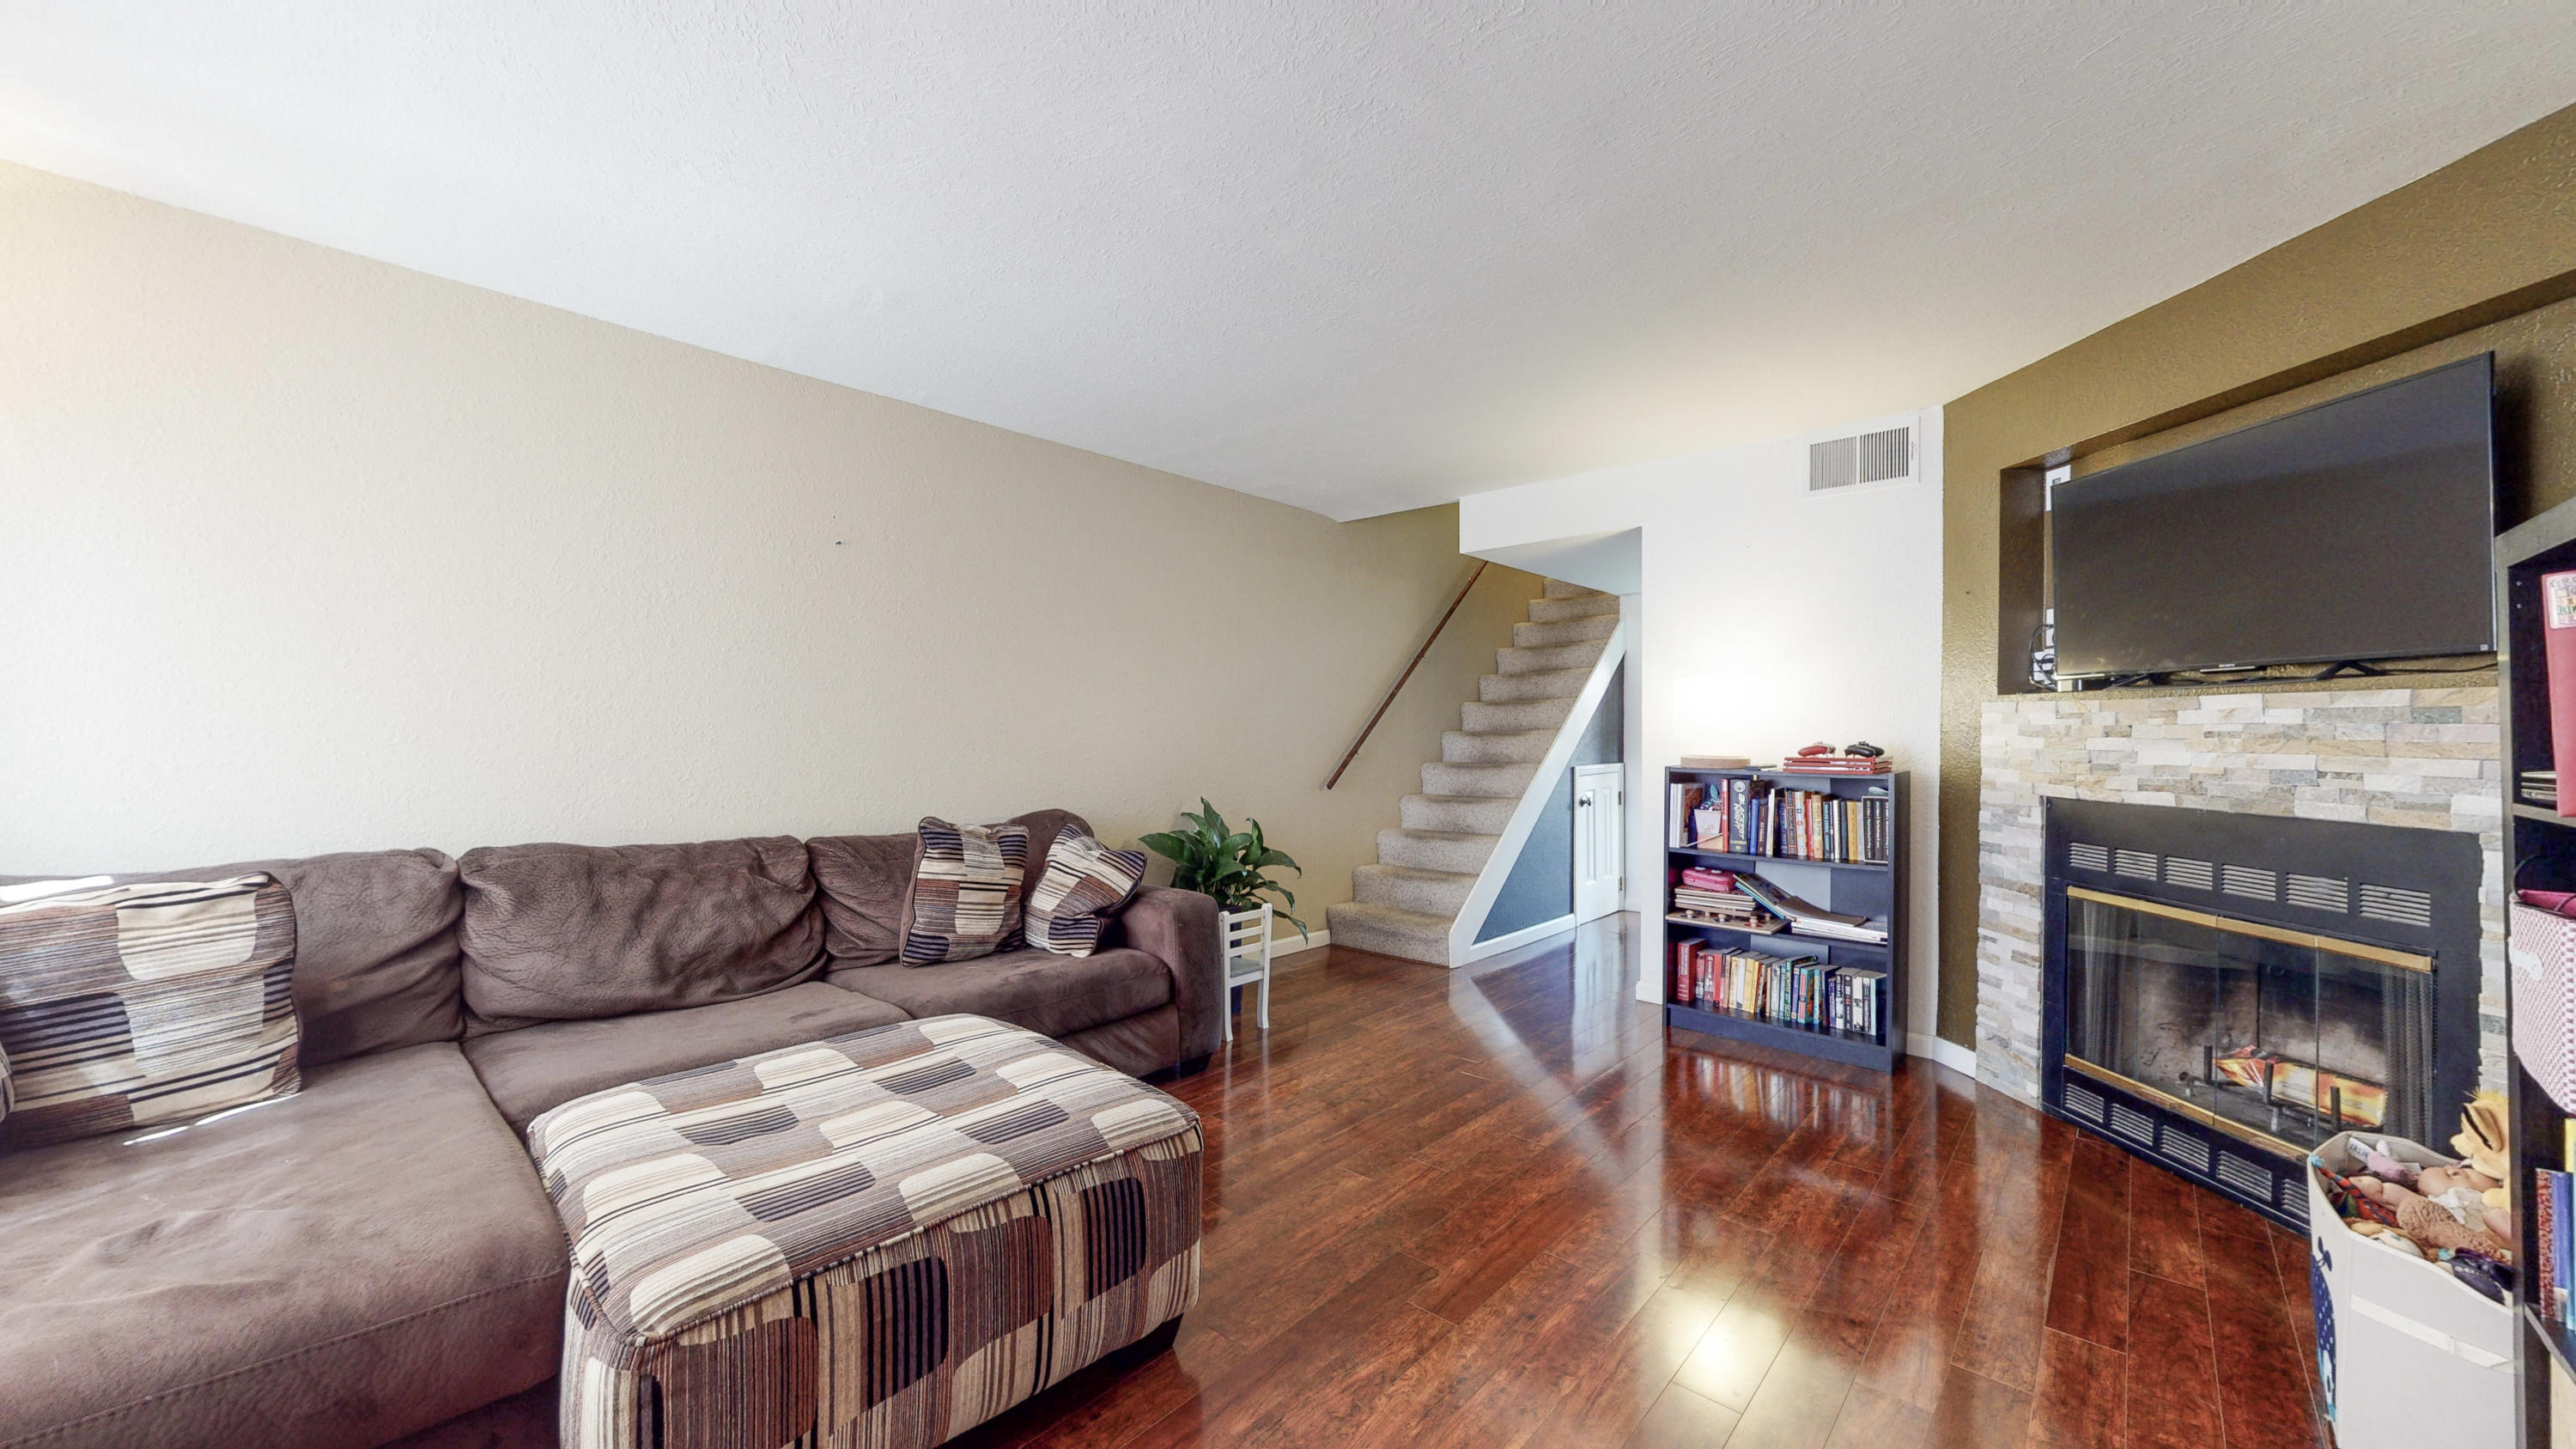 Beautifully upgraded 2 bedroom condo! Centrally located, well-maintained complex.  Fireplace in the living room with laminate floors throughout. 2 master bedrooms with an additional bathroom downstairs. Great little backyard courtyard for relaxing on beautiful summer nights! Come by and view your next home today!